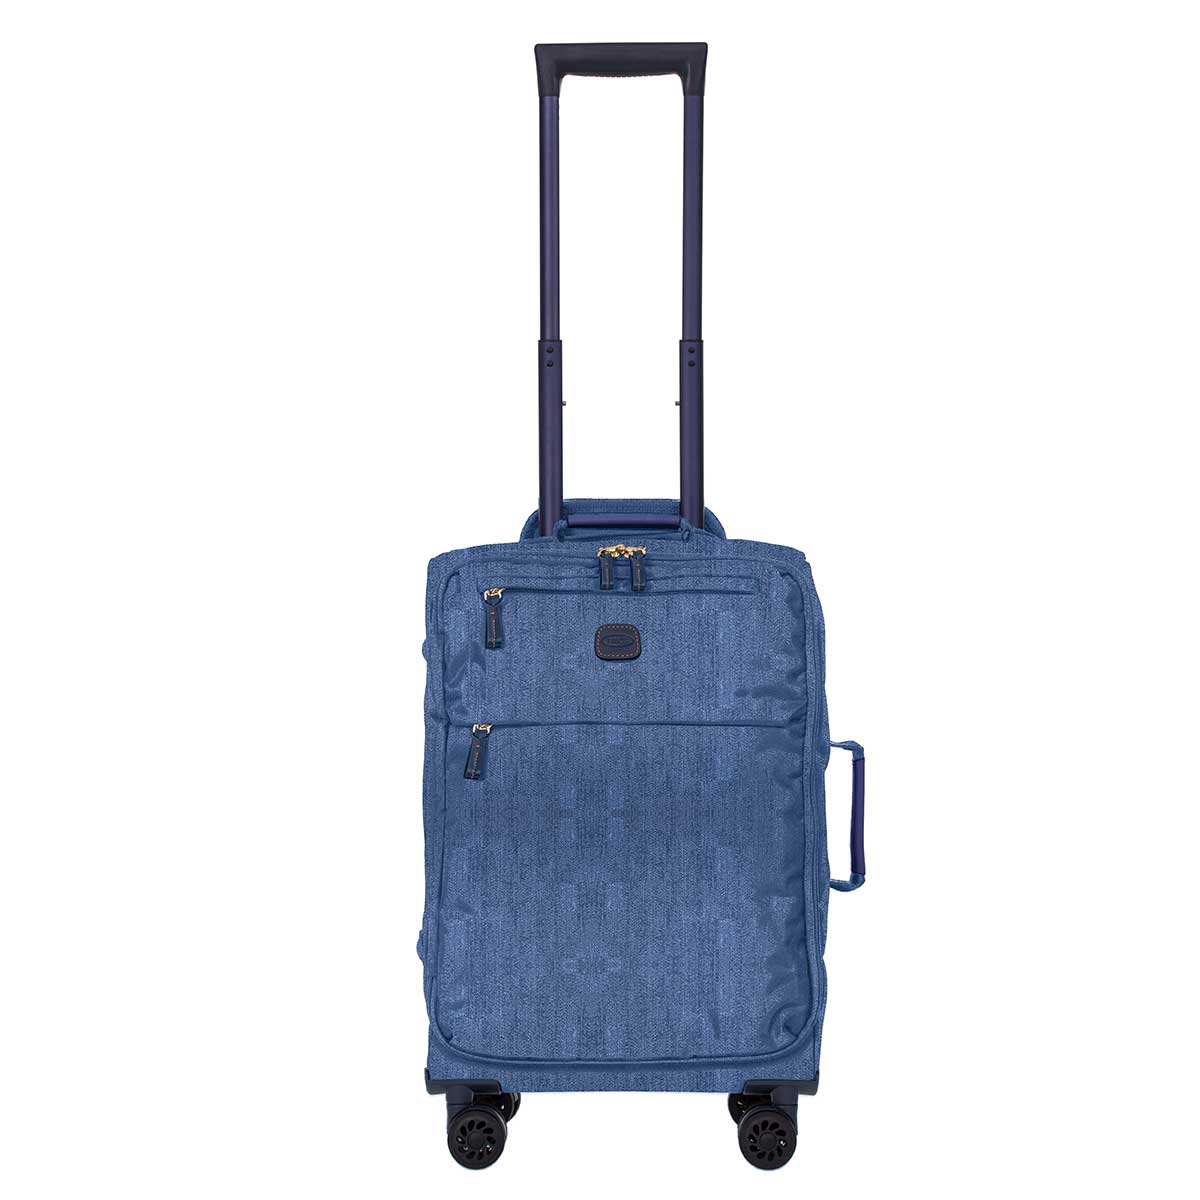 "BRIC'S X-Bag 21"" Carry-On Spinner - Jean Blue 